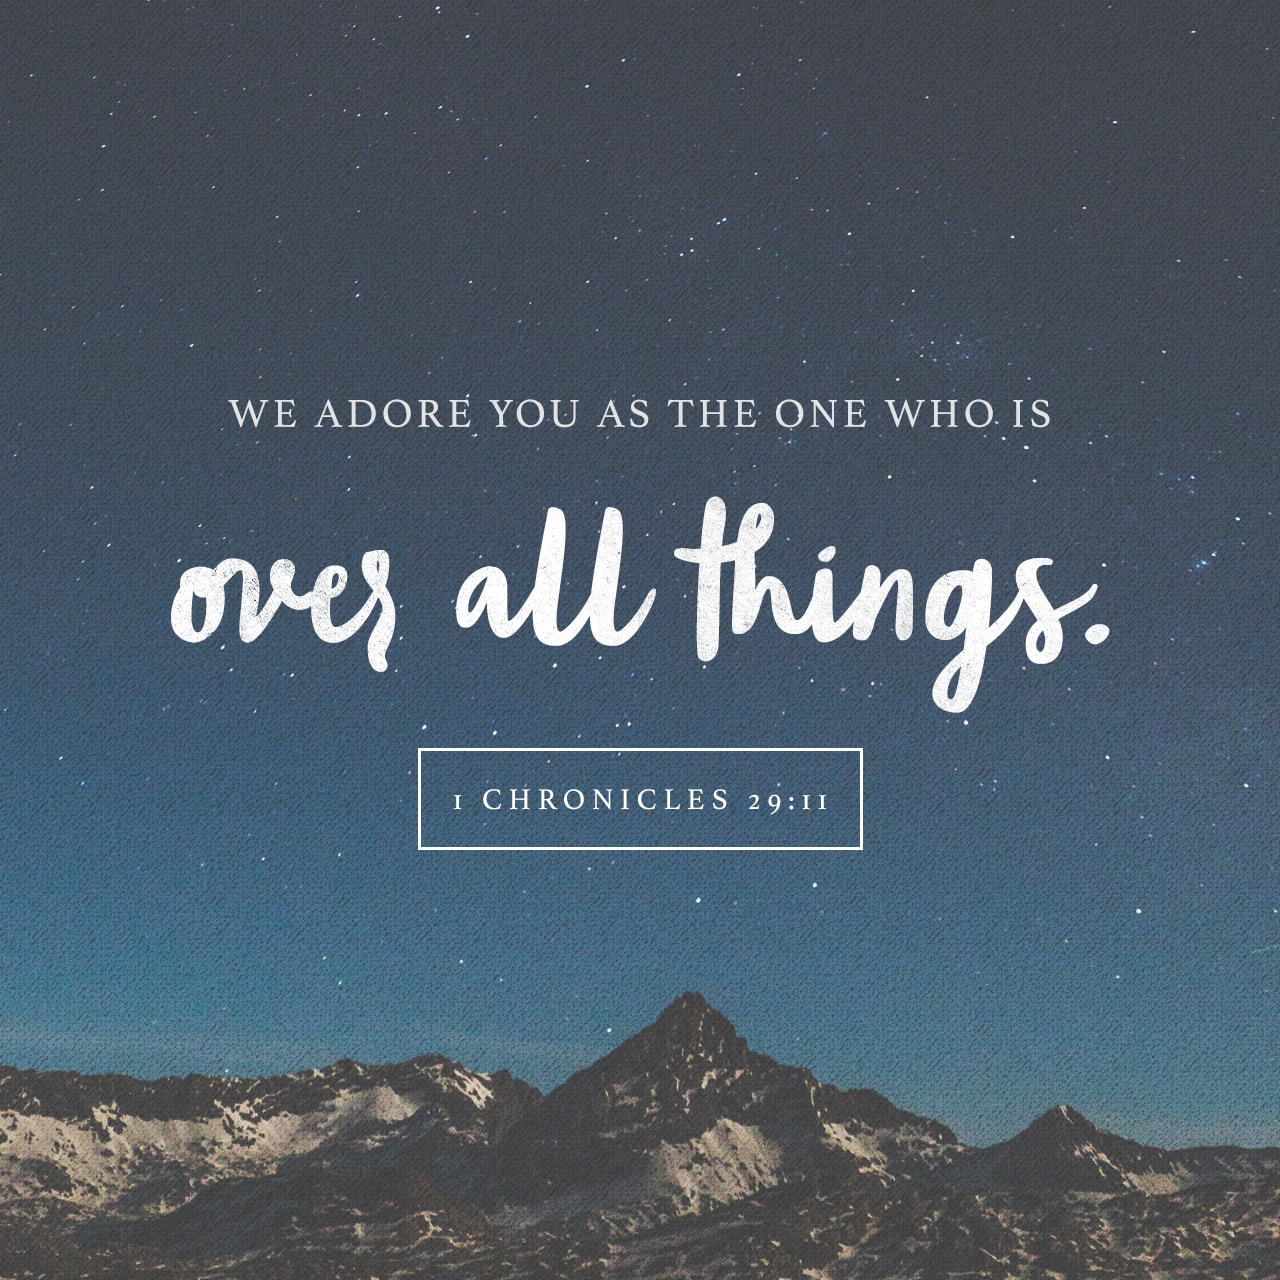 1 Chronicles 29:11